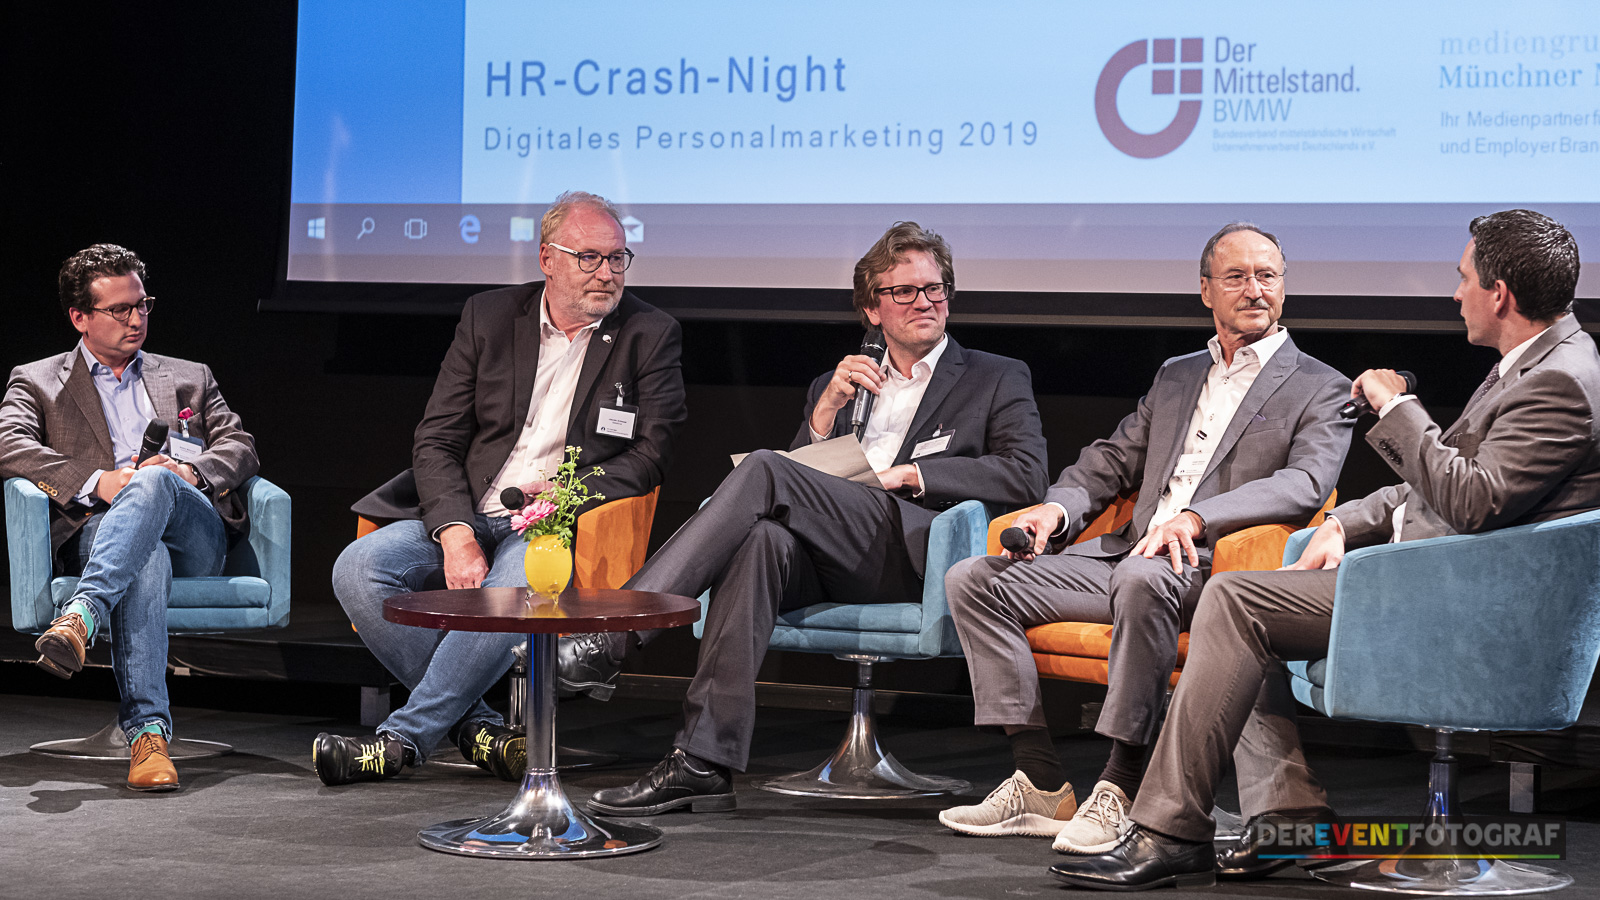 HR Crash Night Podiumsdiskussion; Foto: Andreas Schebesta, der Eventfotograf